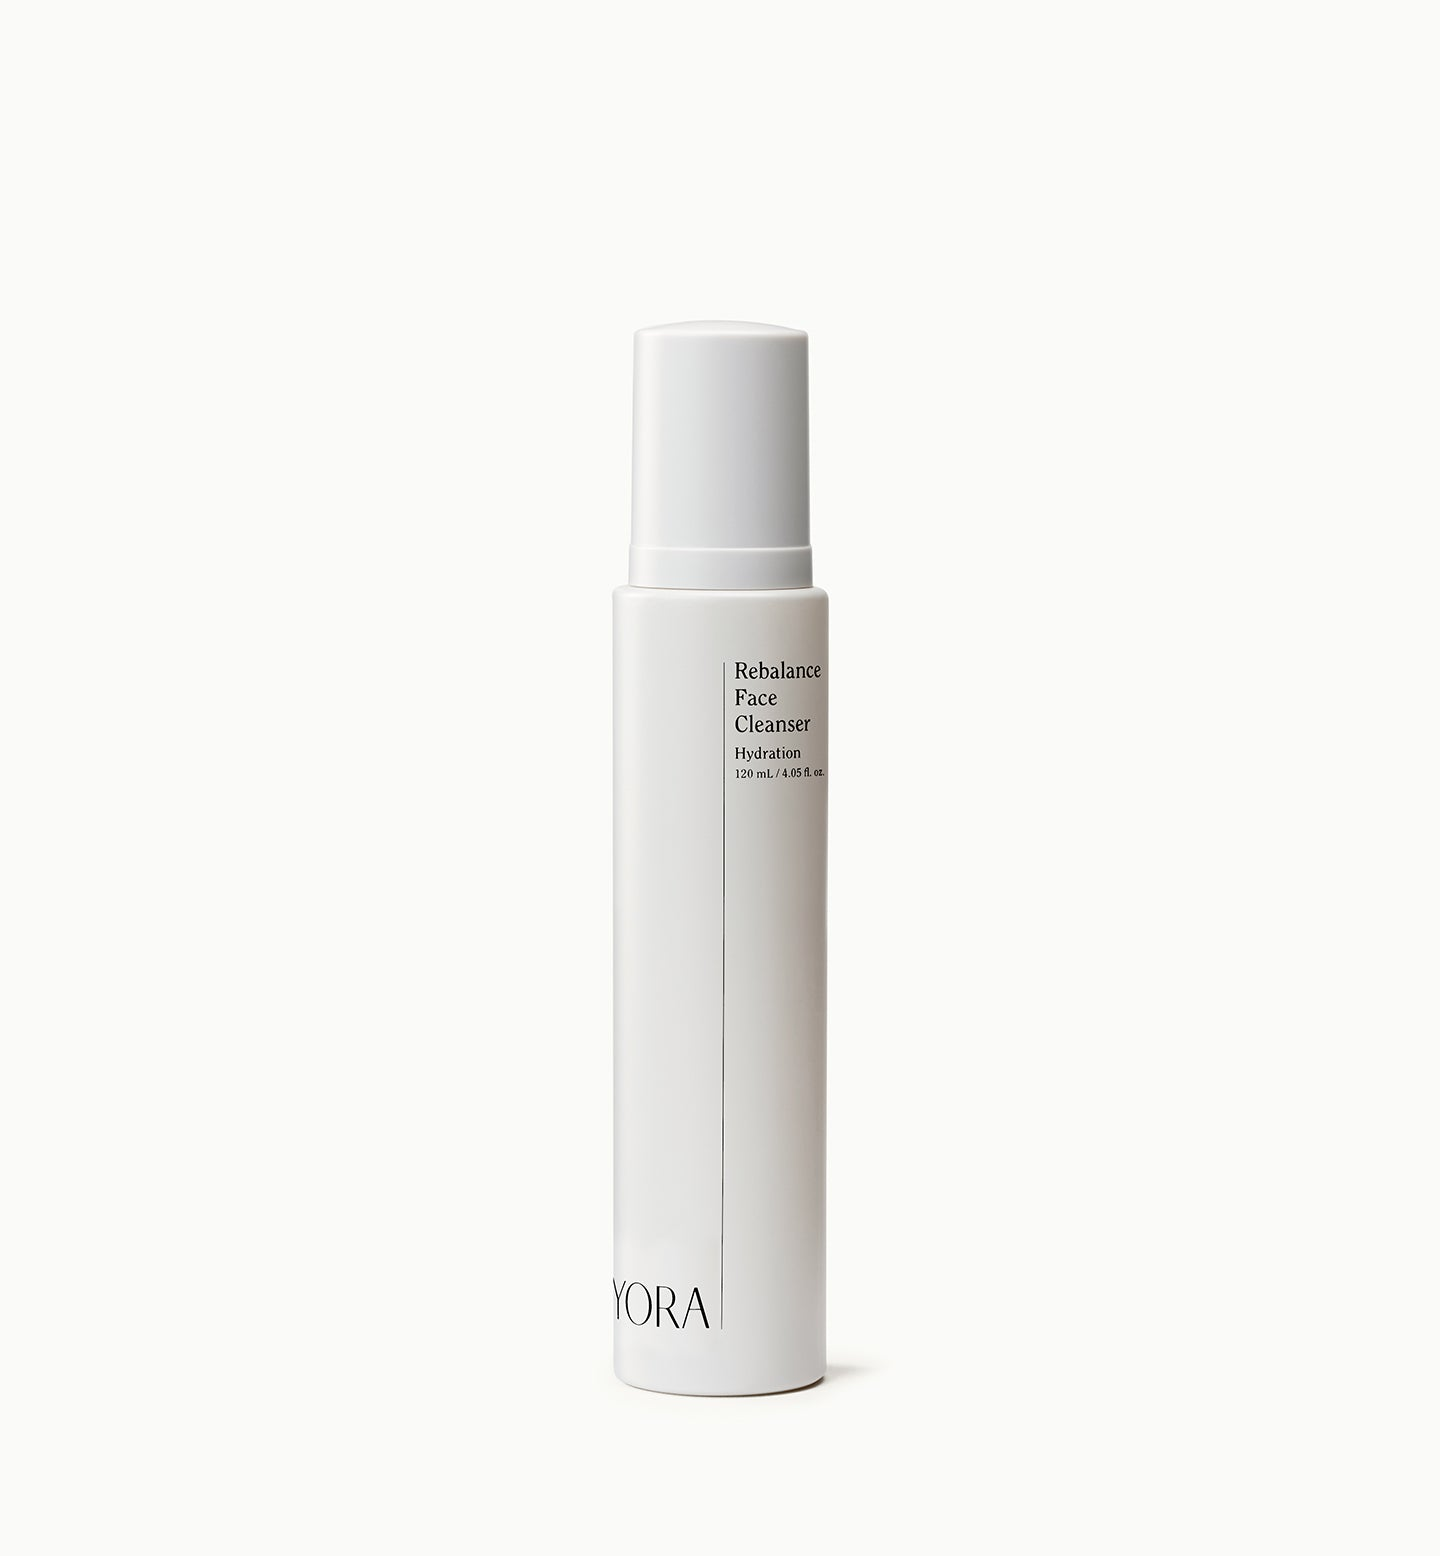 Rebalance Face Cleanser - Front